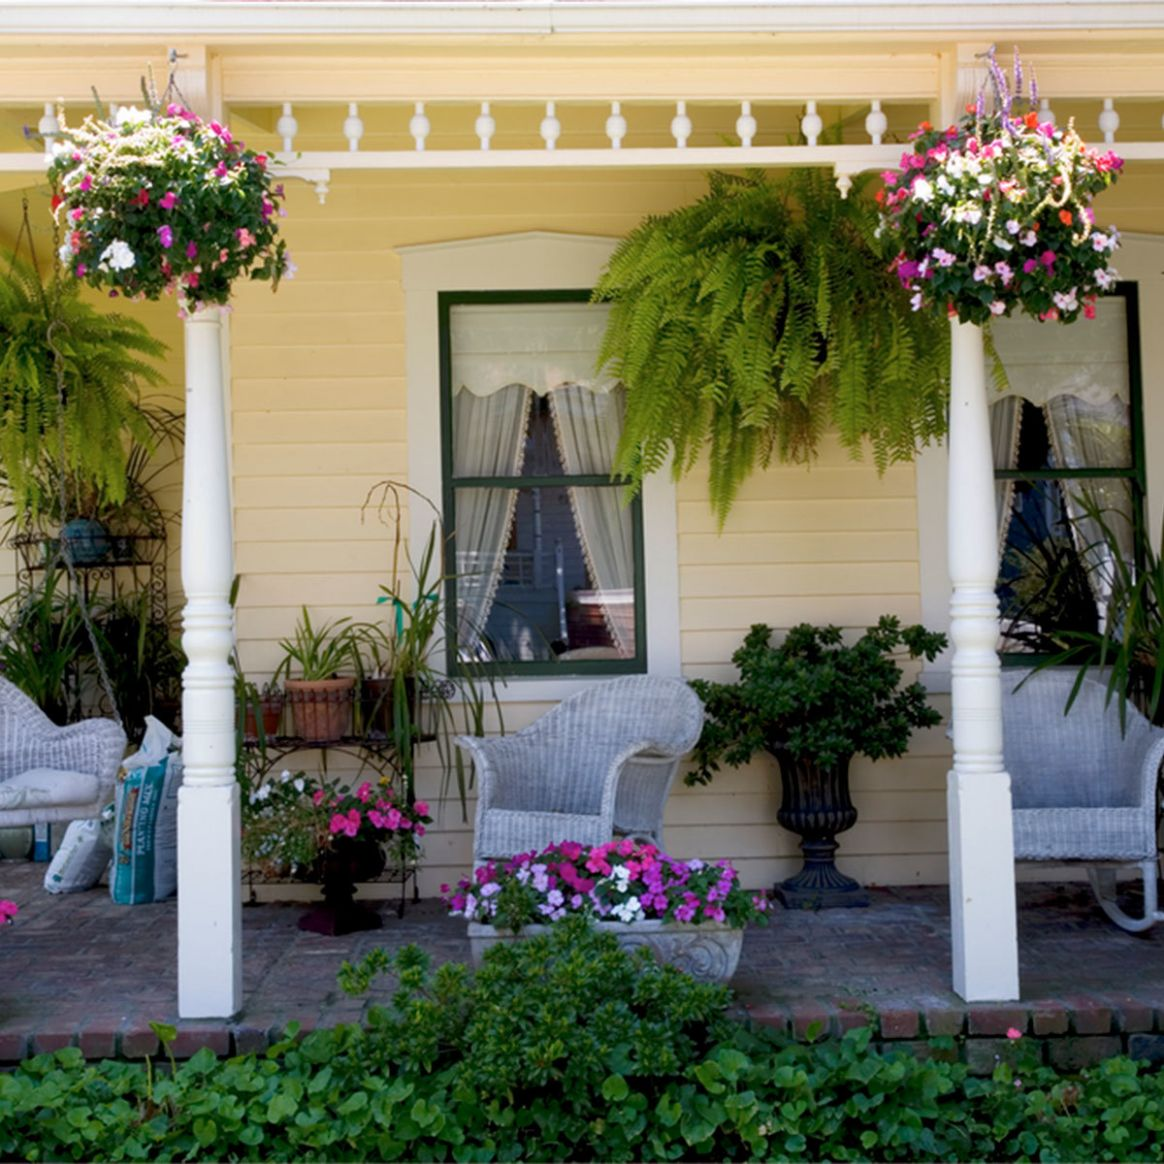 11 Front Porch Ideas and Décor for a More Welcoming Space - front porch decor lake country